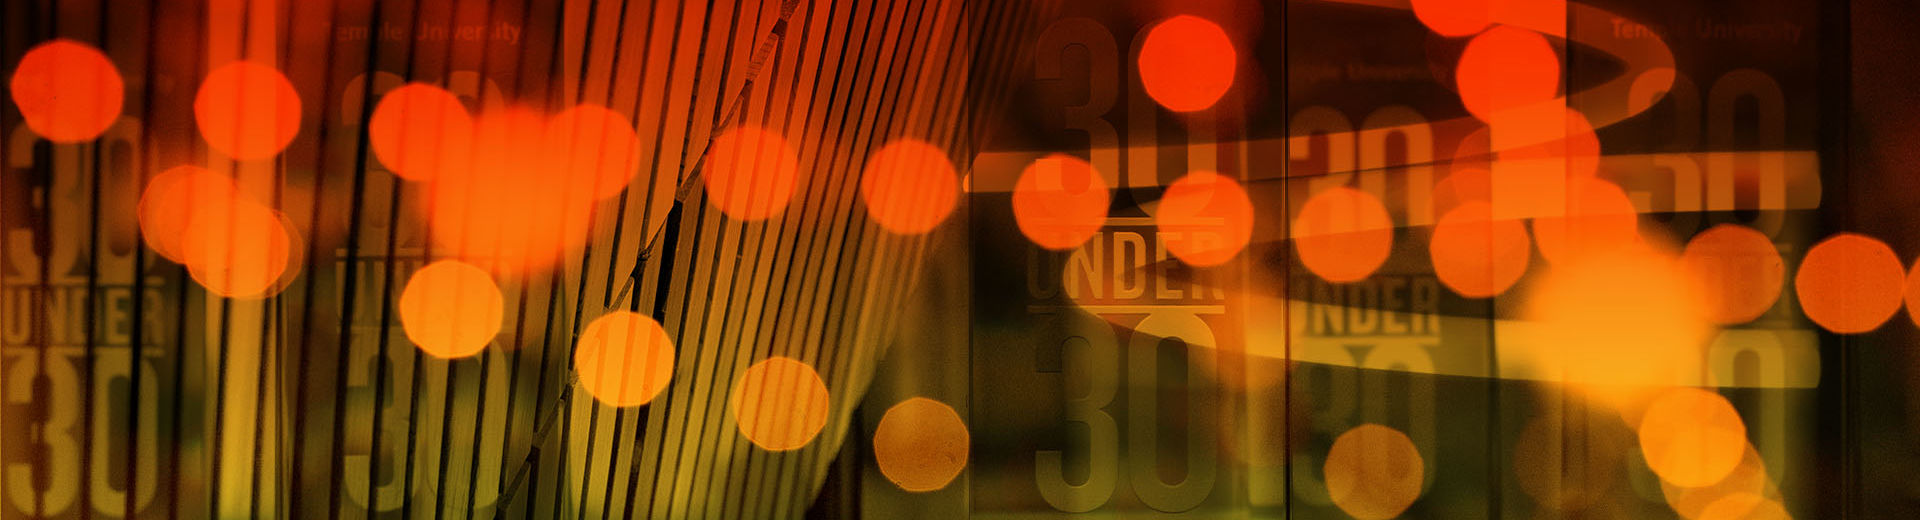 A compilation of Temple University-related abstract images with an orange tone.